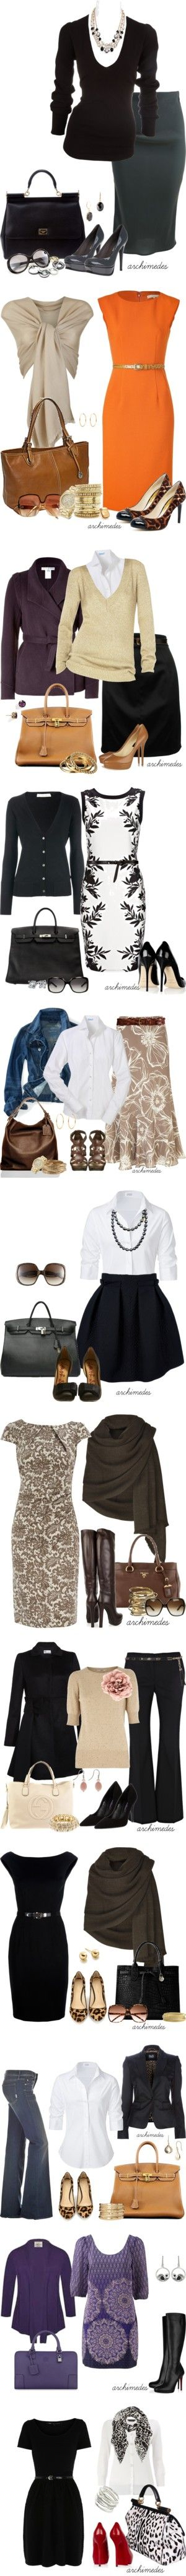 Cute combinations! Not all are my style but still think they are cute.